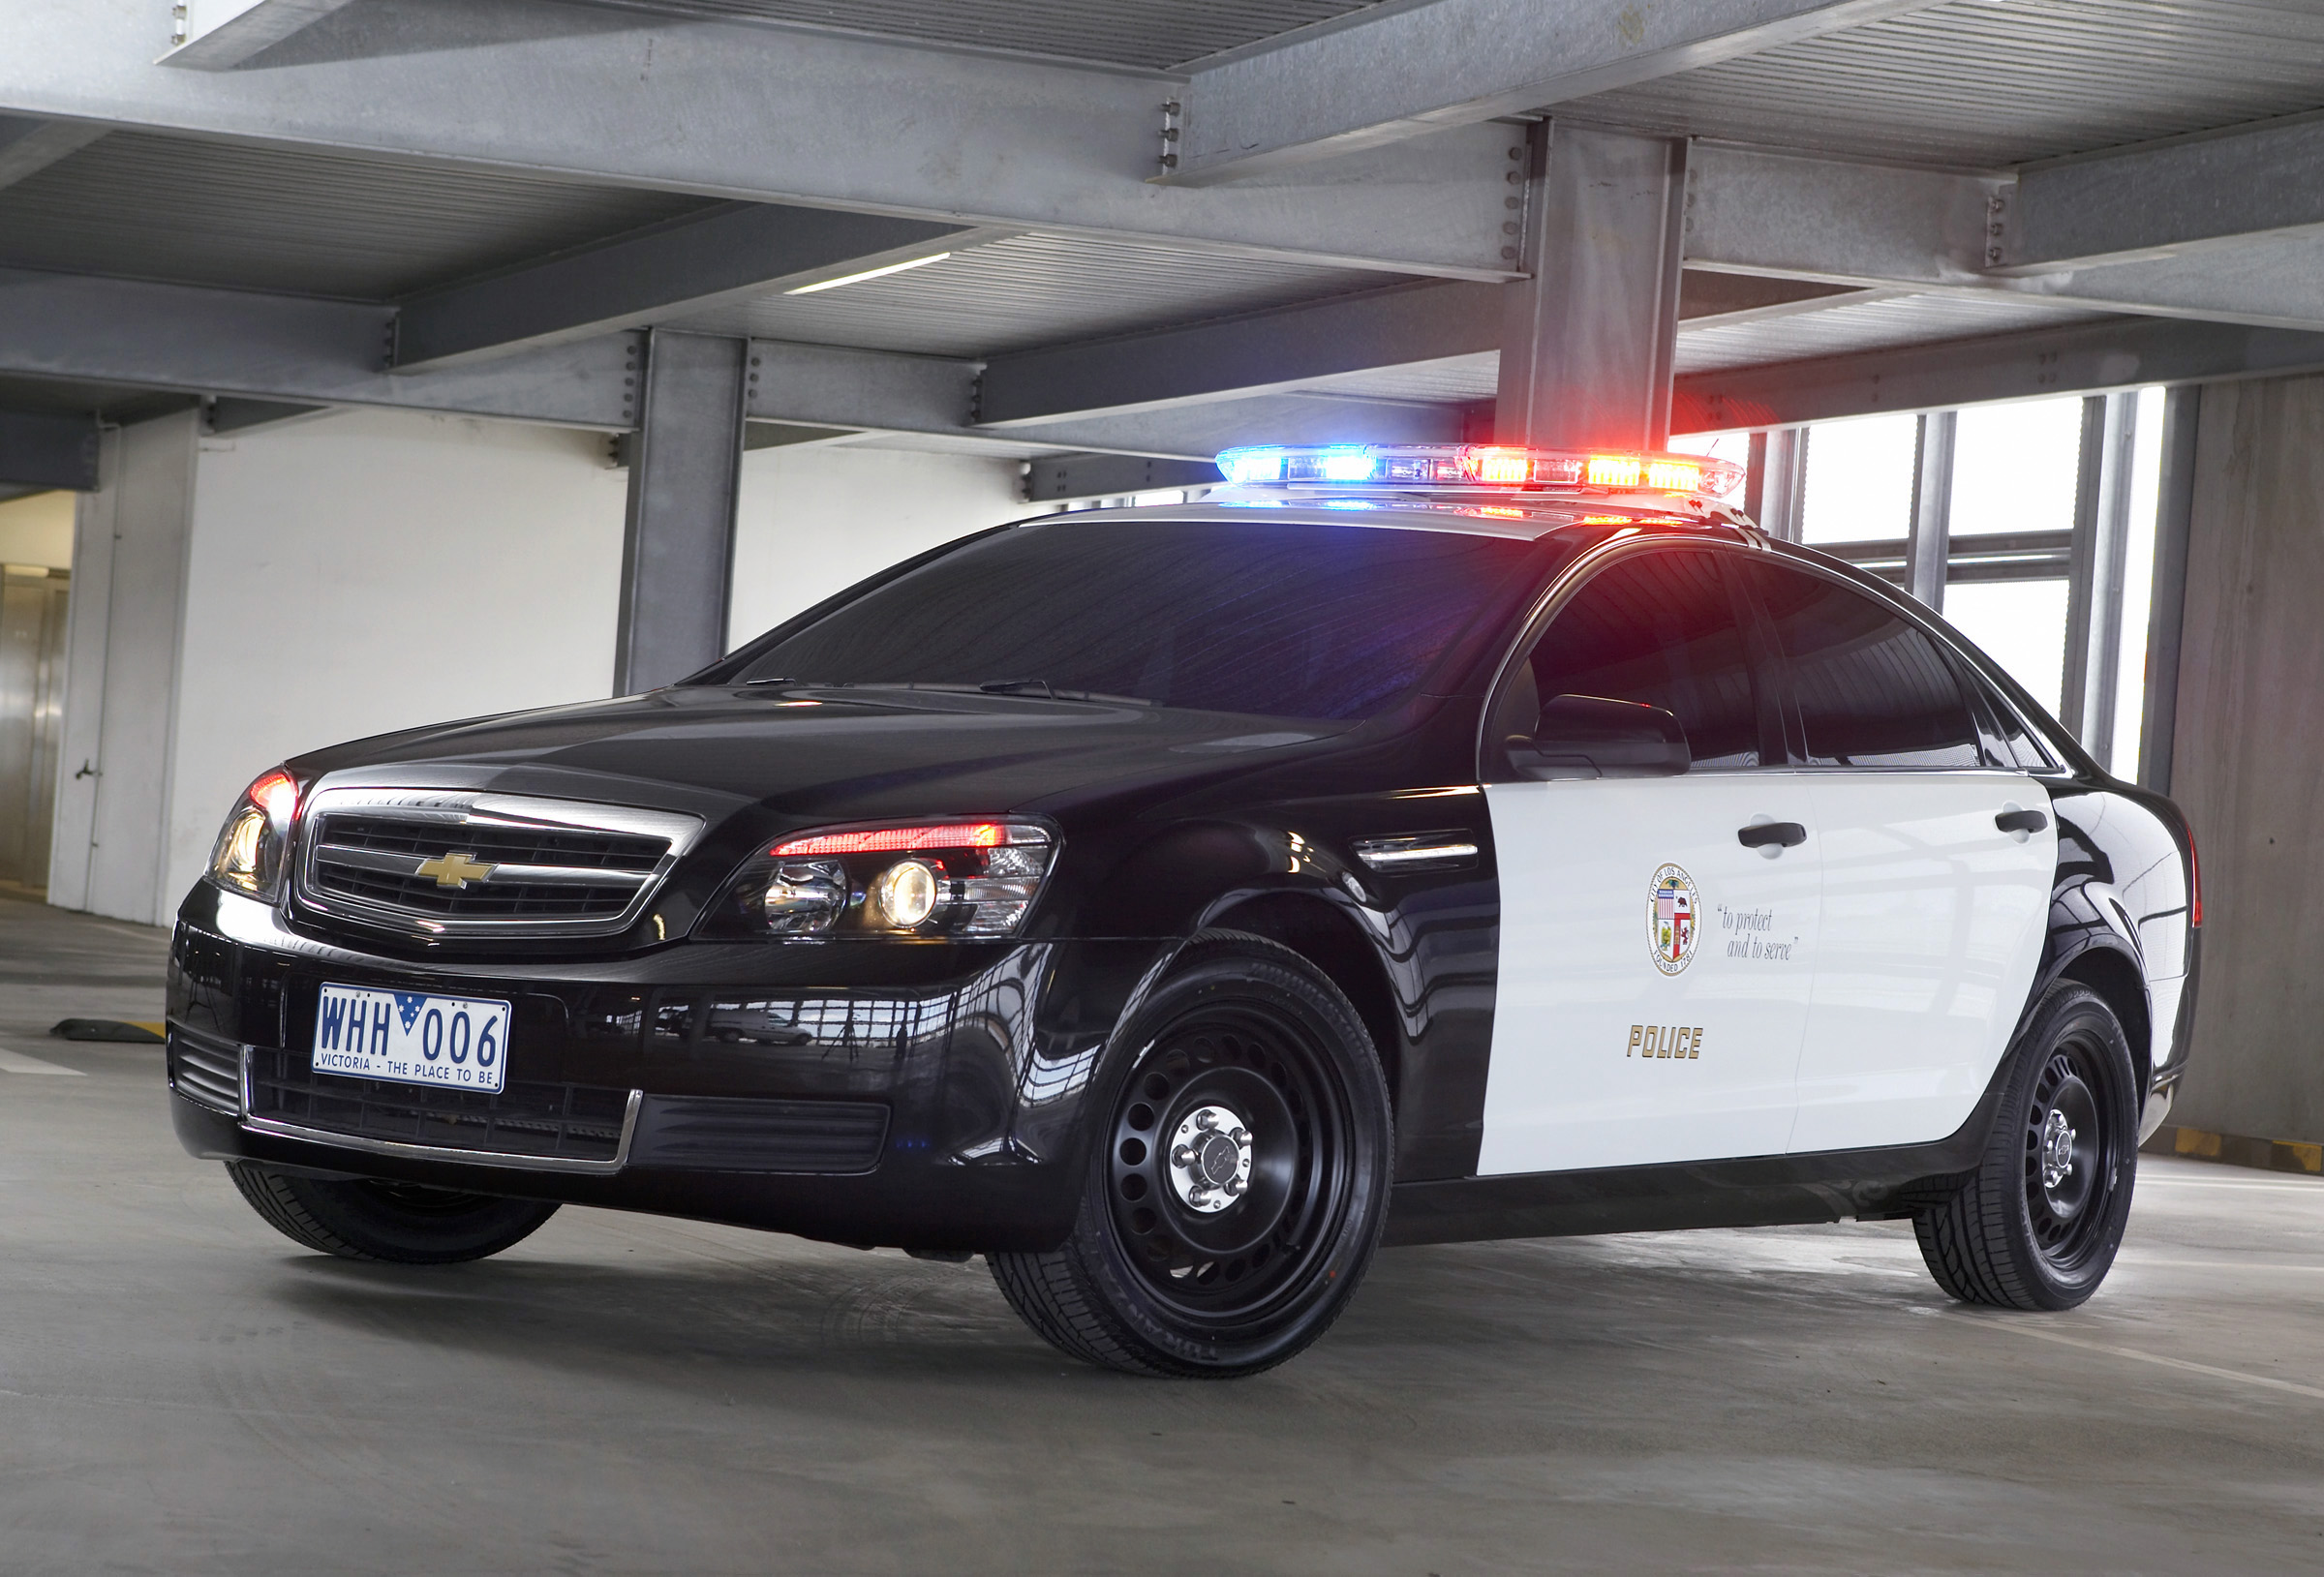 Cars for Sale by Police Awesome Chevrolet Caprice is Re Born In the Us as A Police Car Only